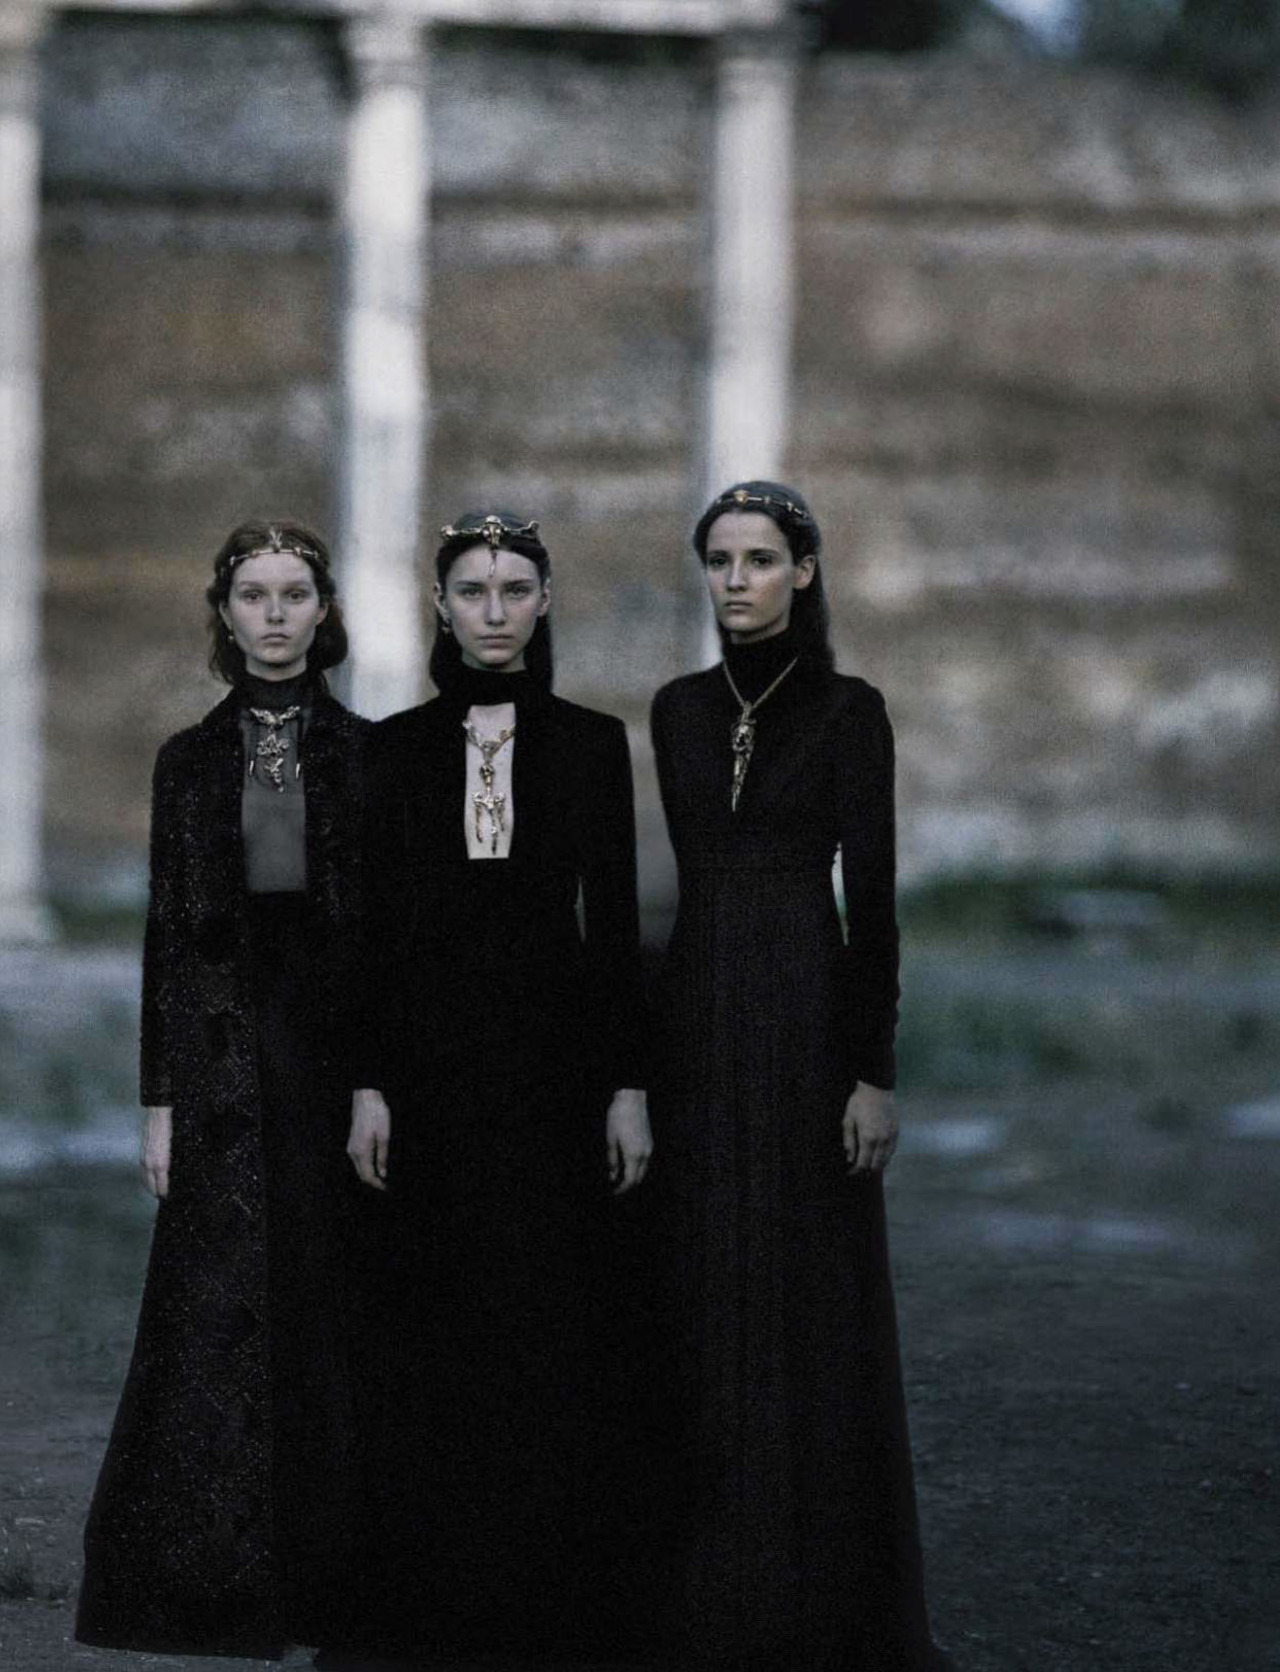 witches' lookbook : Photo